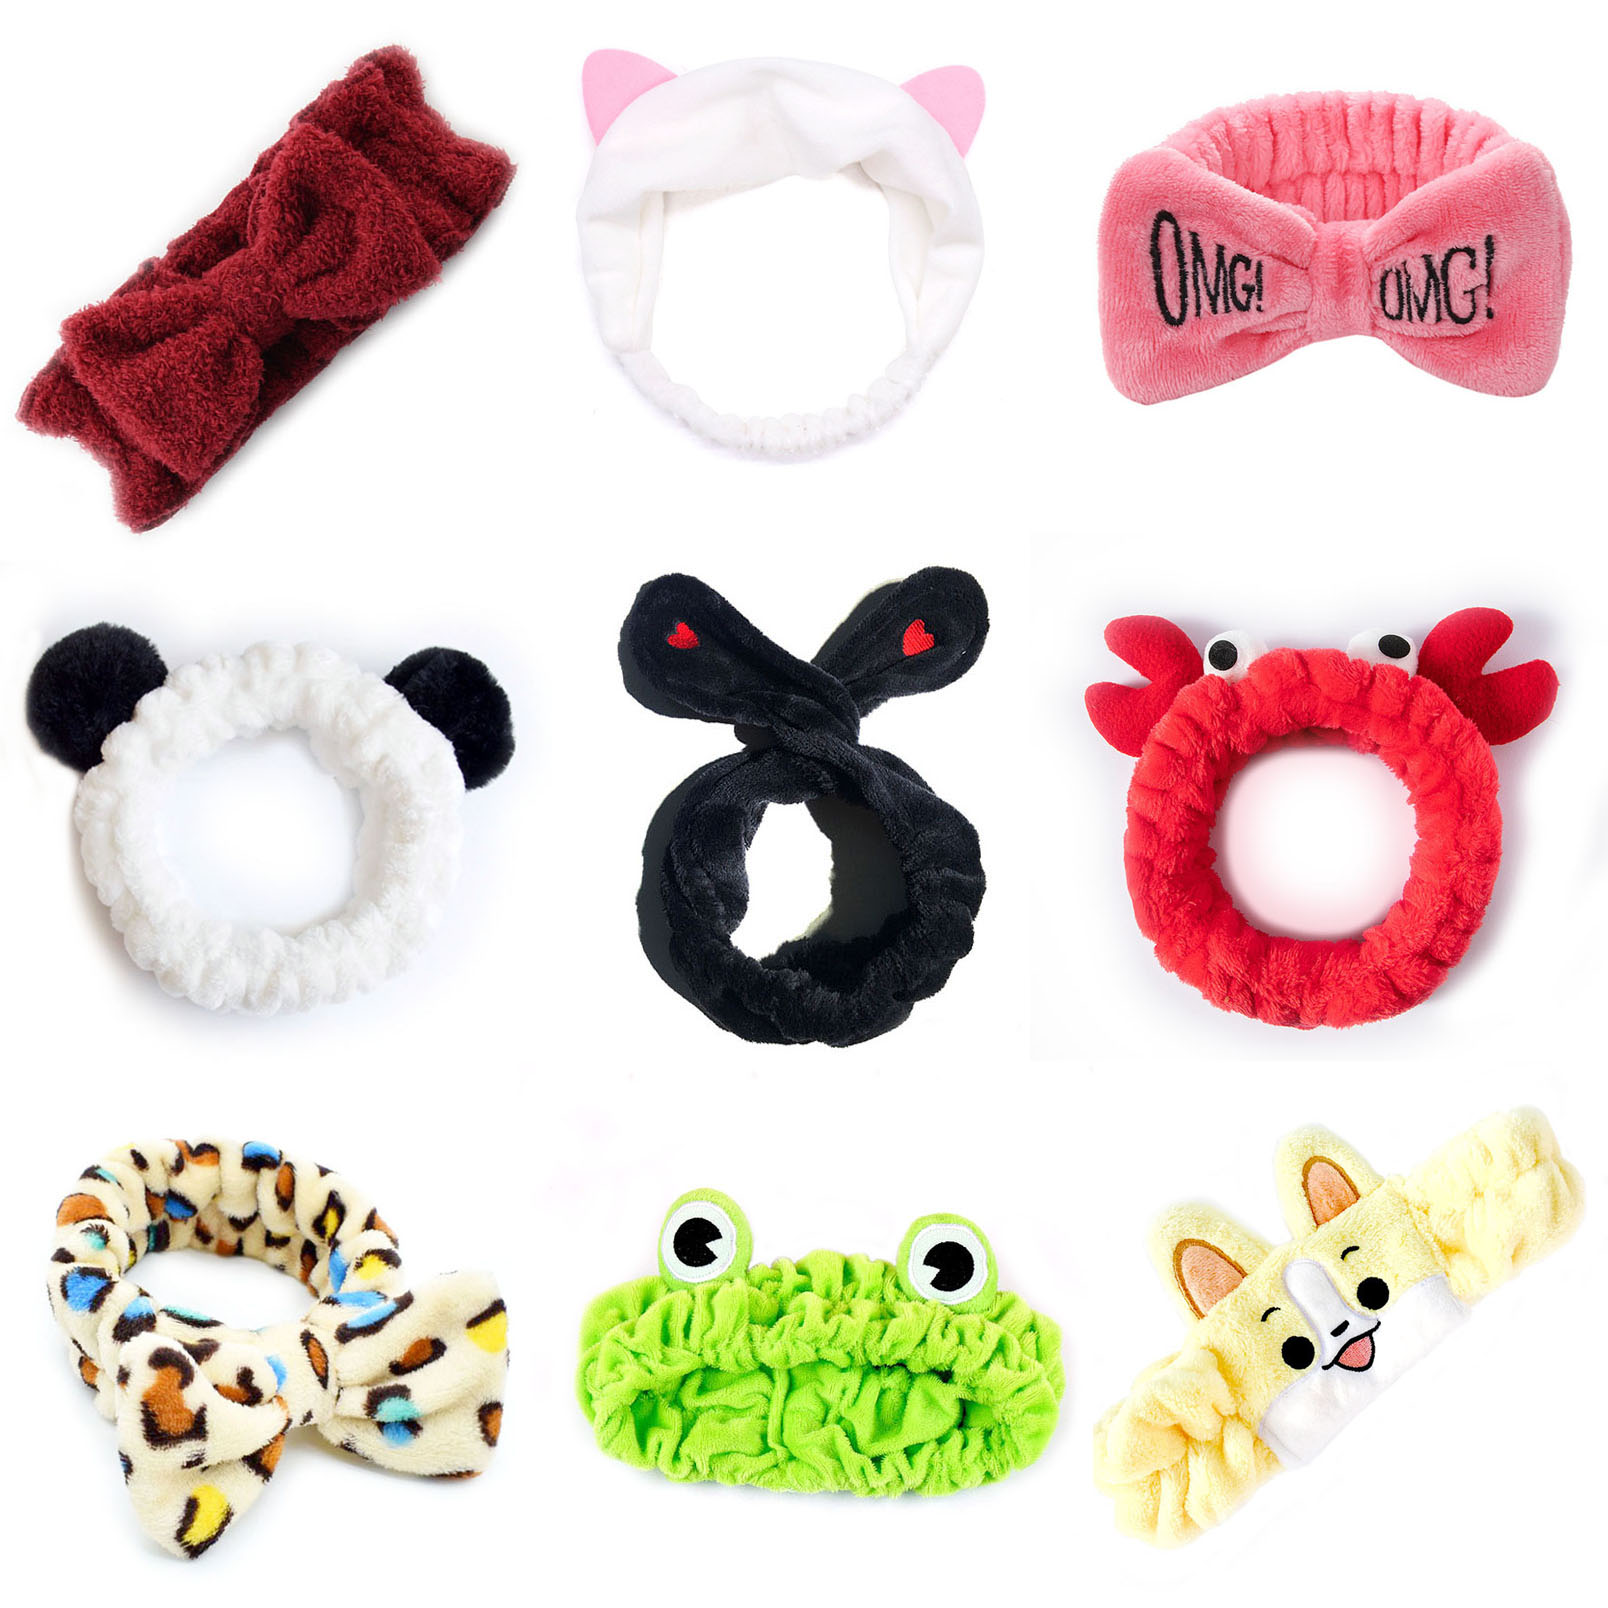 Headwear For Women New Stretch Hair Band Wash Makeup Headband Children Kids Hair Band Bow OMG Bunny Girl Cat Girl